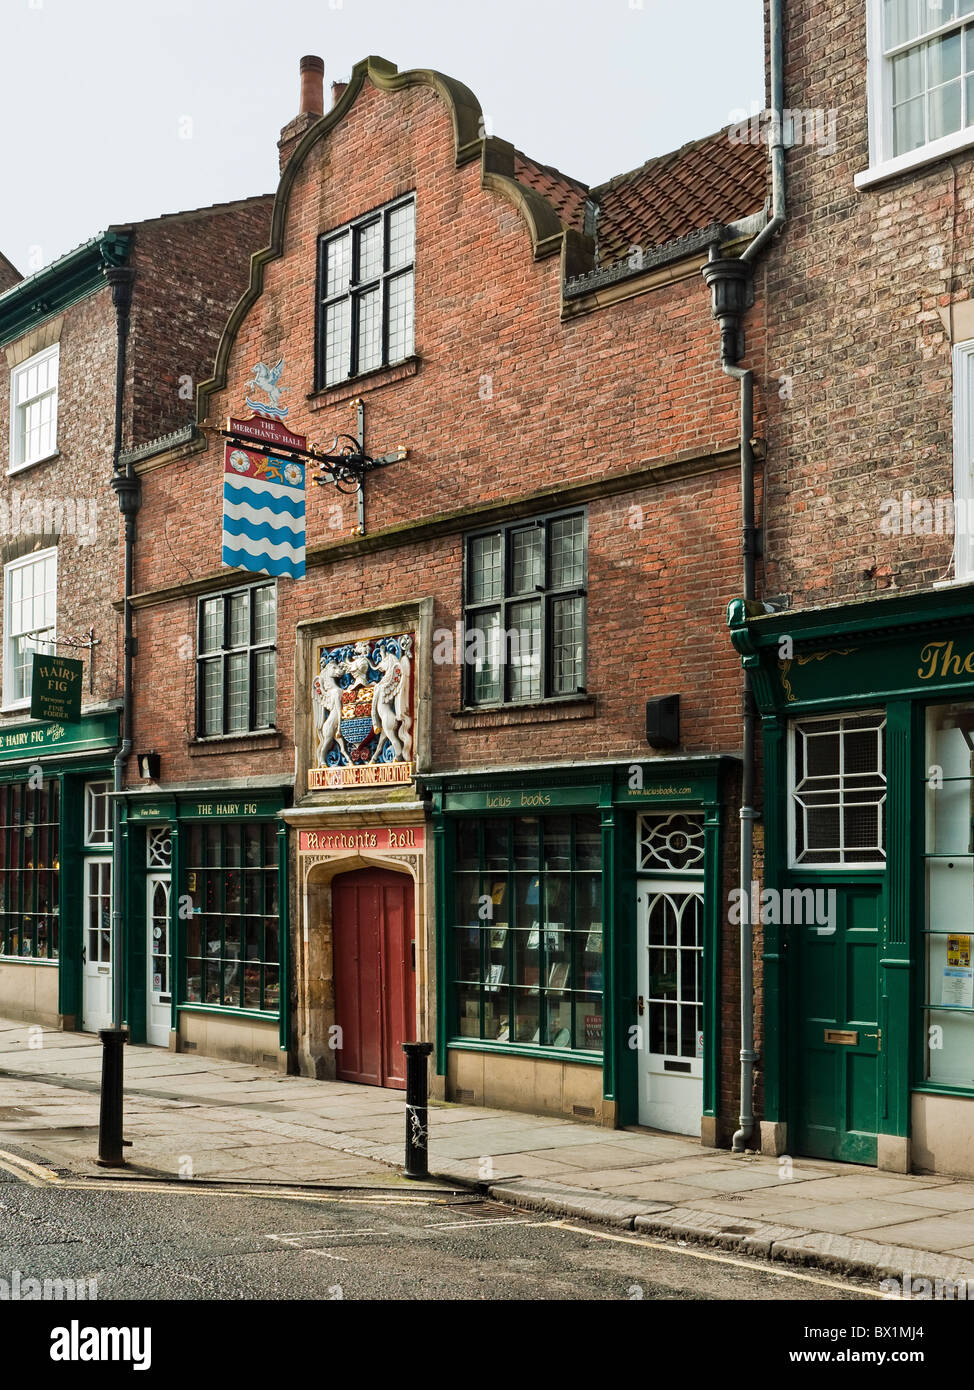 Entrance to Merchant's Hall, Fossgate, City of York, Yorkshire, UK - Stock Image